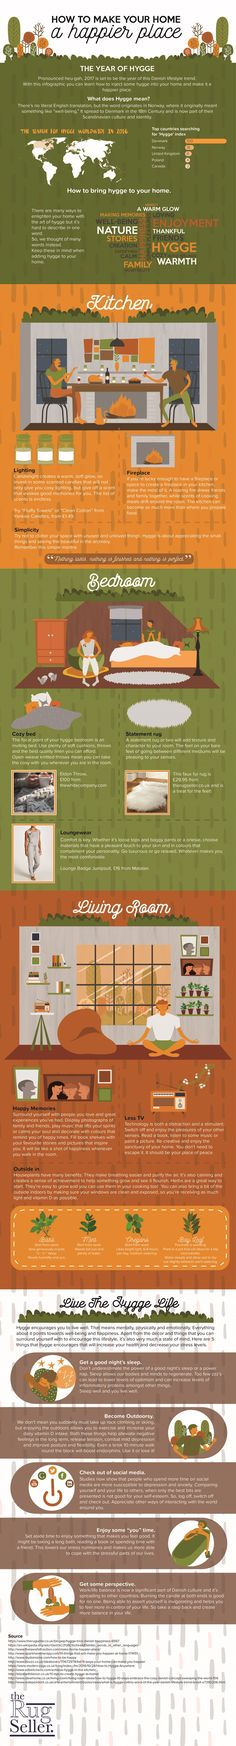 How to Make Your Home a Happier Place #Infographic #HomeImprovement